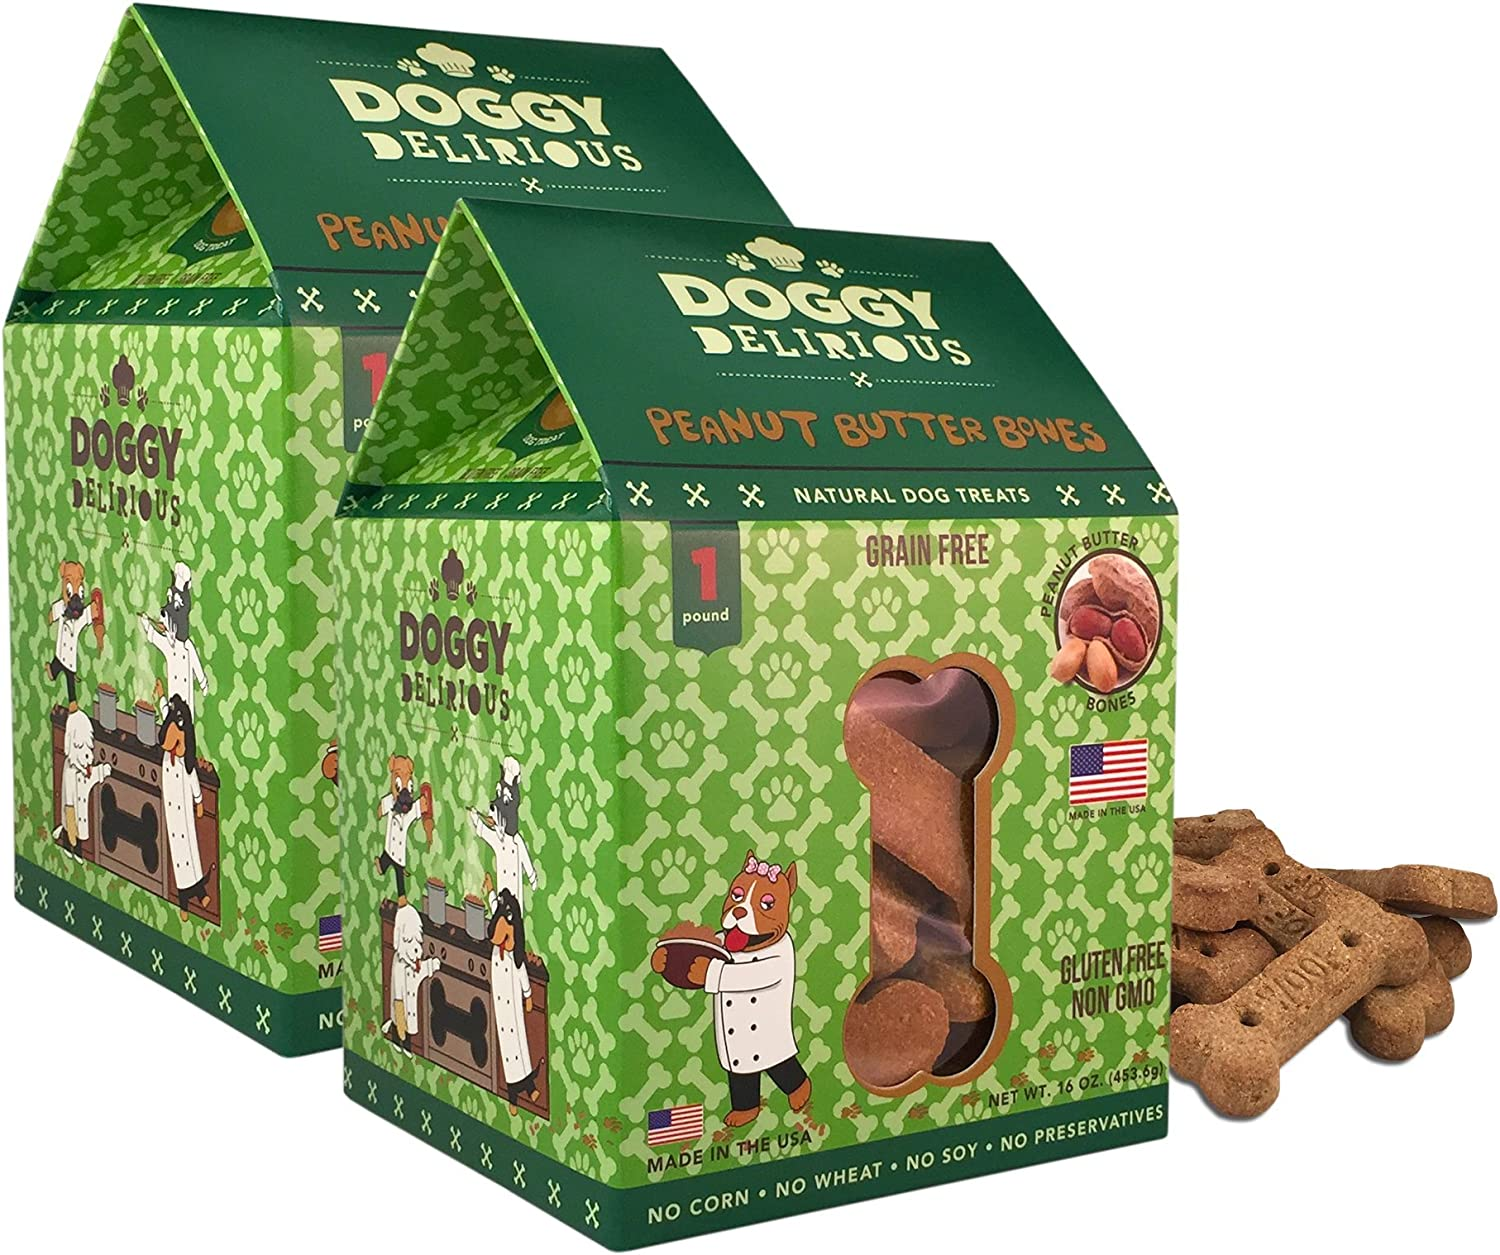 Doggy Delirious Crunchy Dog Treats – Limited price Sizes for New popularity Bre Pet All